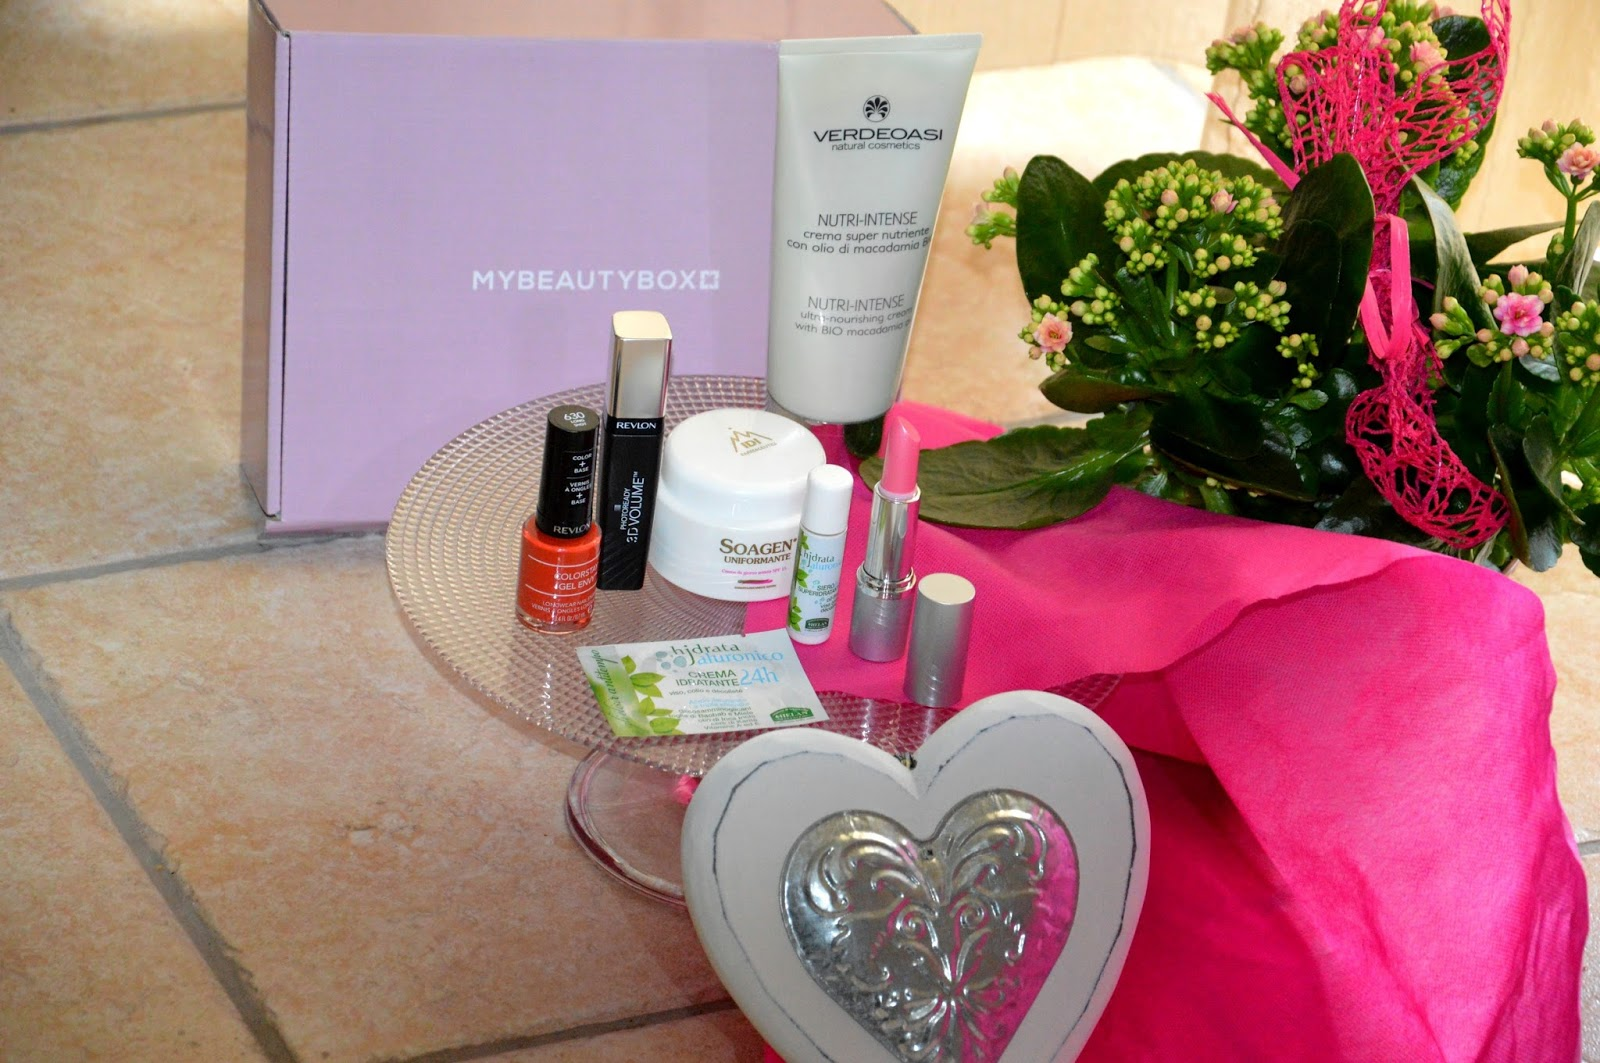 Beauty time: Mybeautybox la mia box di marzo preview